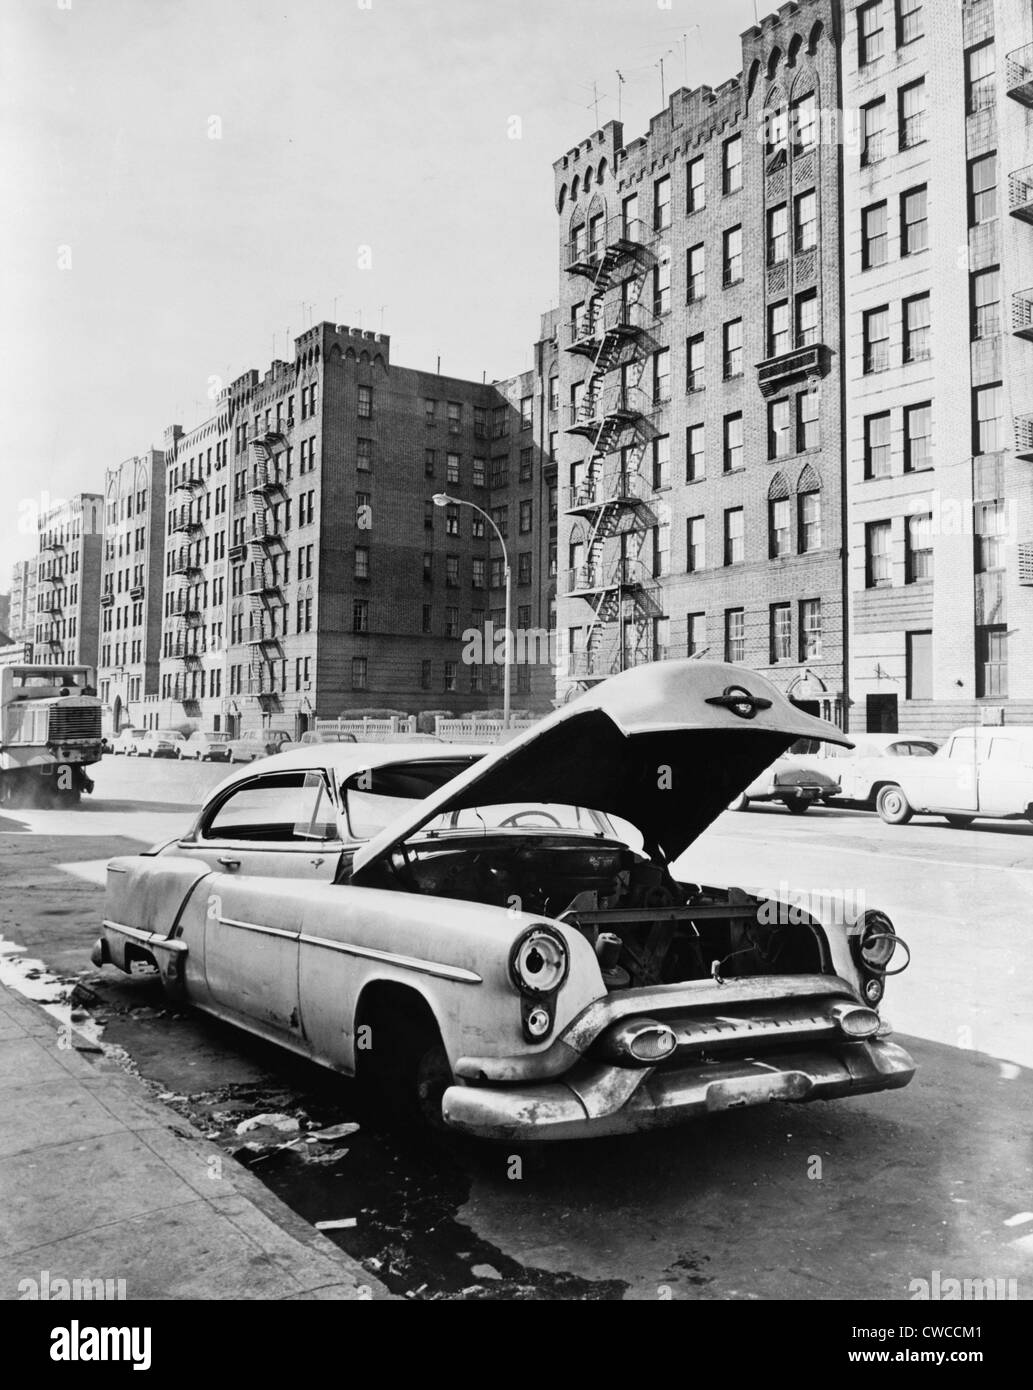 bronx street in new york city an abandoned automobile a vacant lot stock photo 50060529 alamy. Black Bedroom Furniture Sets. Home Design Ideas